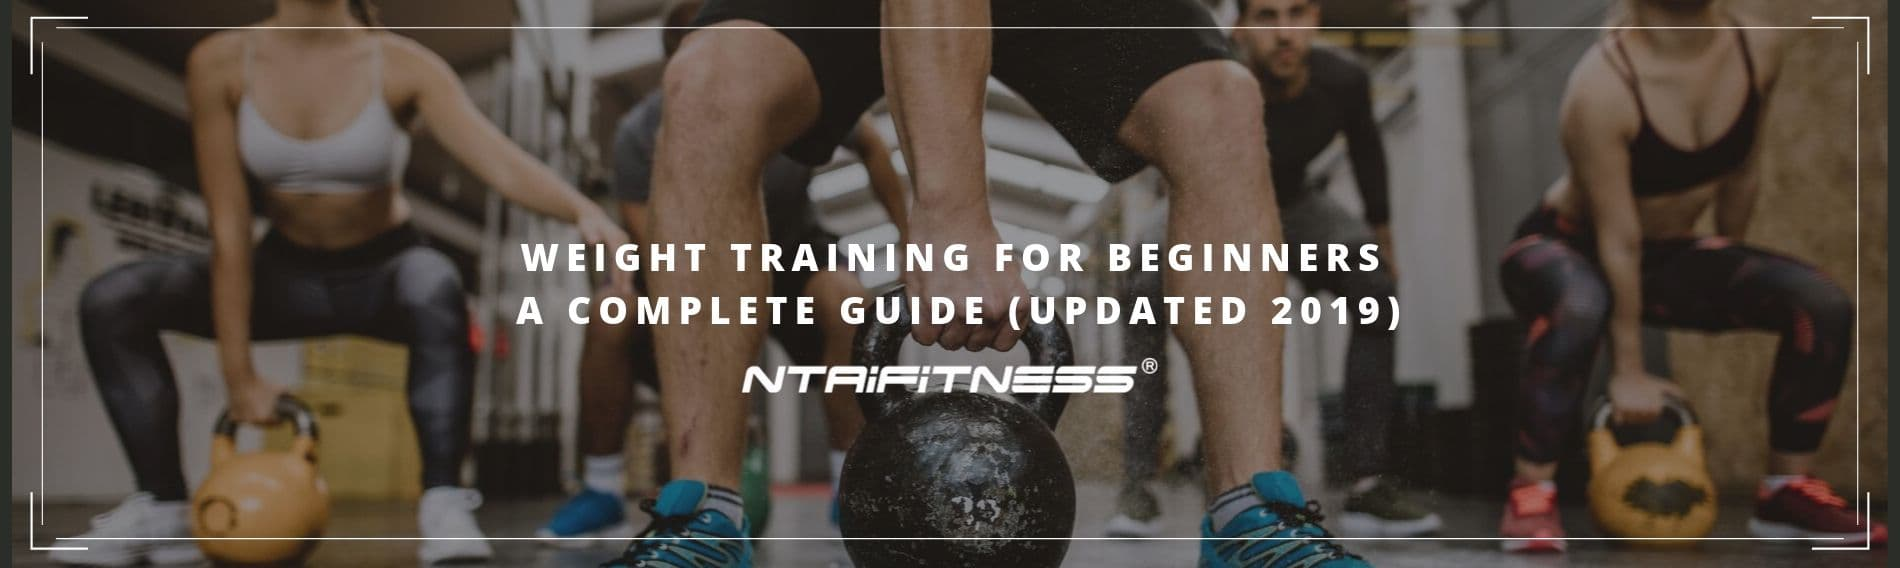 Weight Training for Beginners: A Complete Guide (Updated 2019)